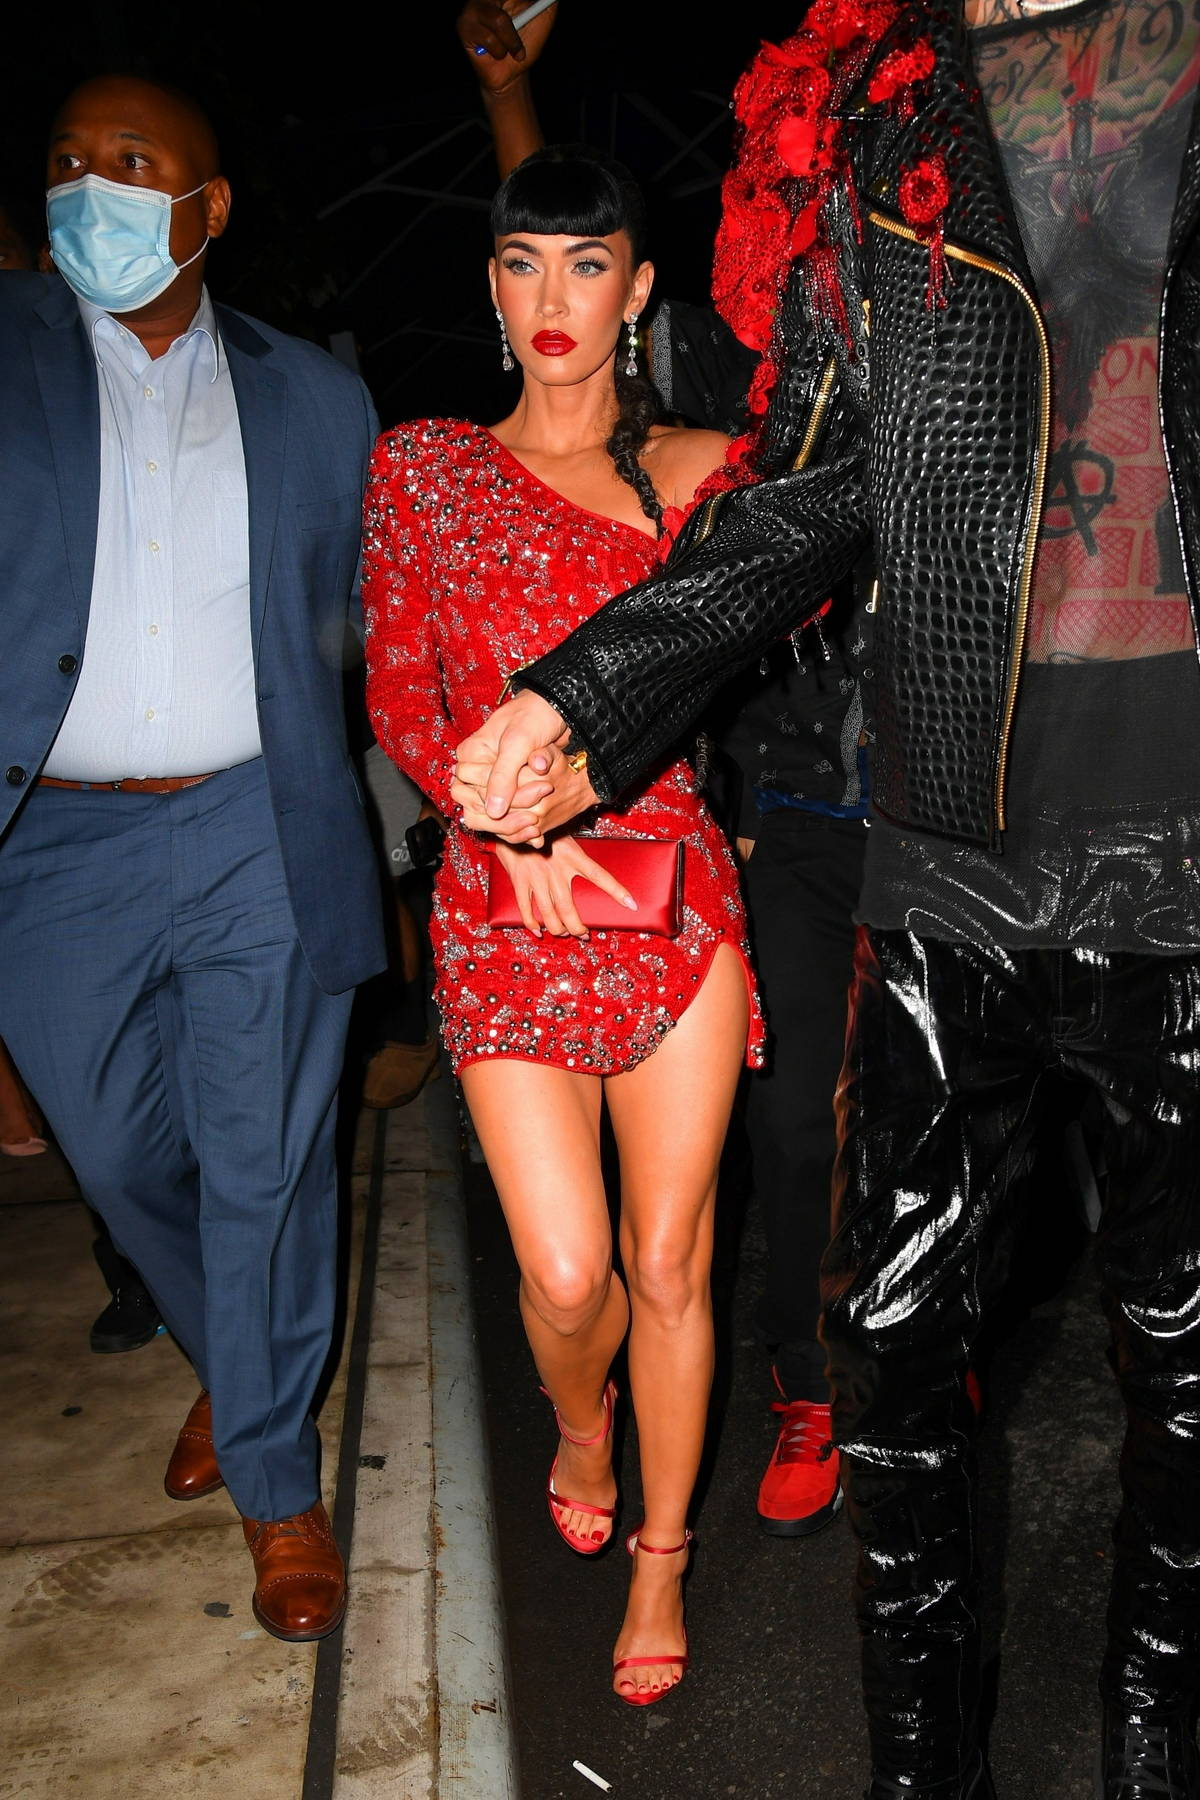 Megan Fox looks gorgeous in a red mini dress while heading to a Met Gala after-party with Machine Gun Kelly in New York City